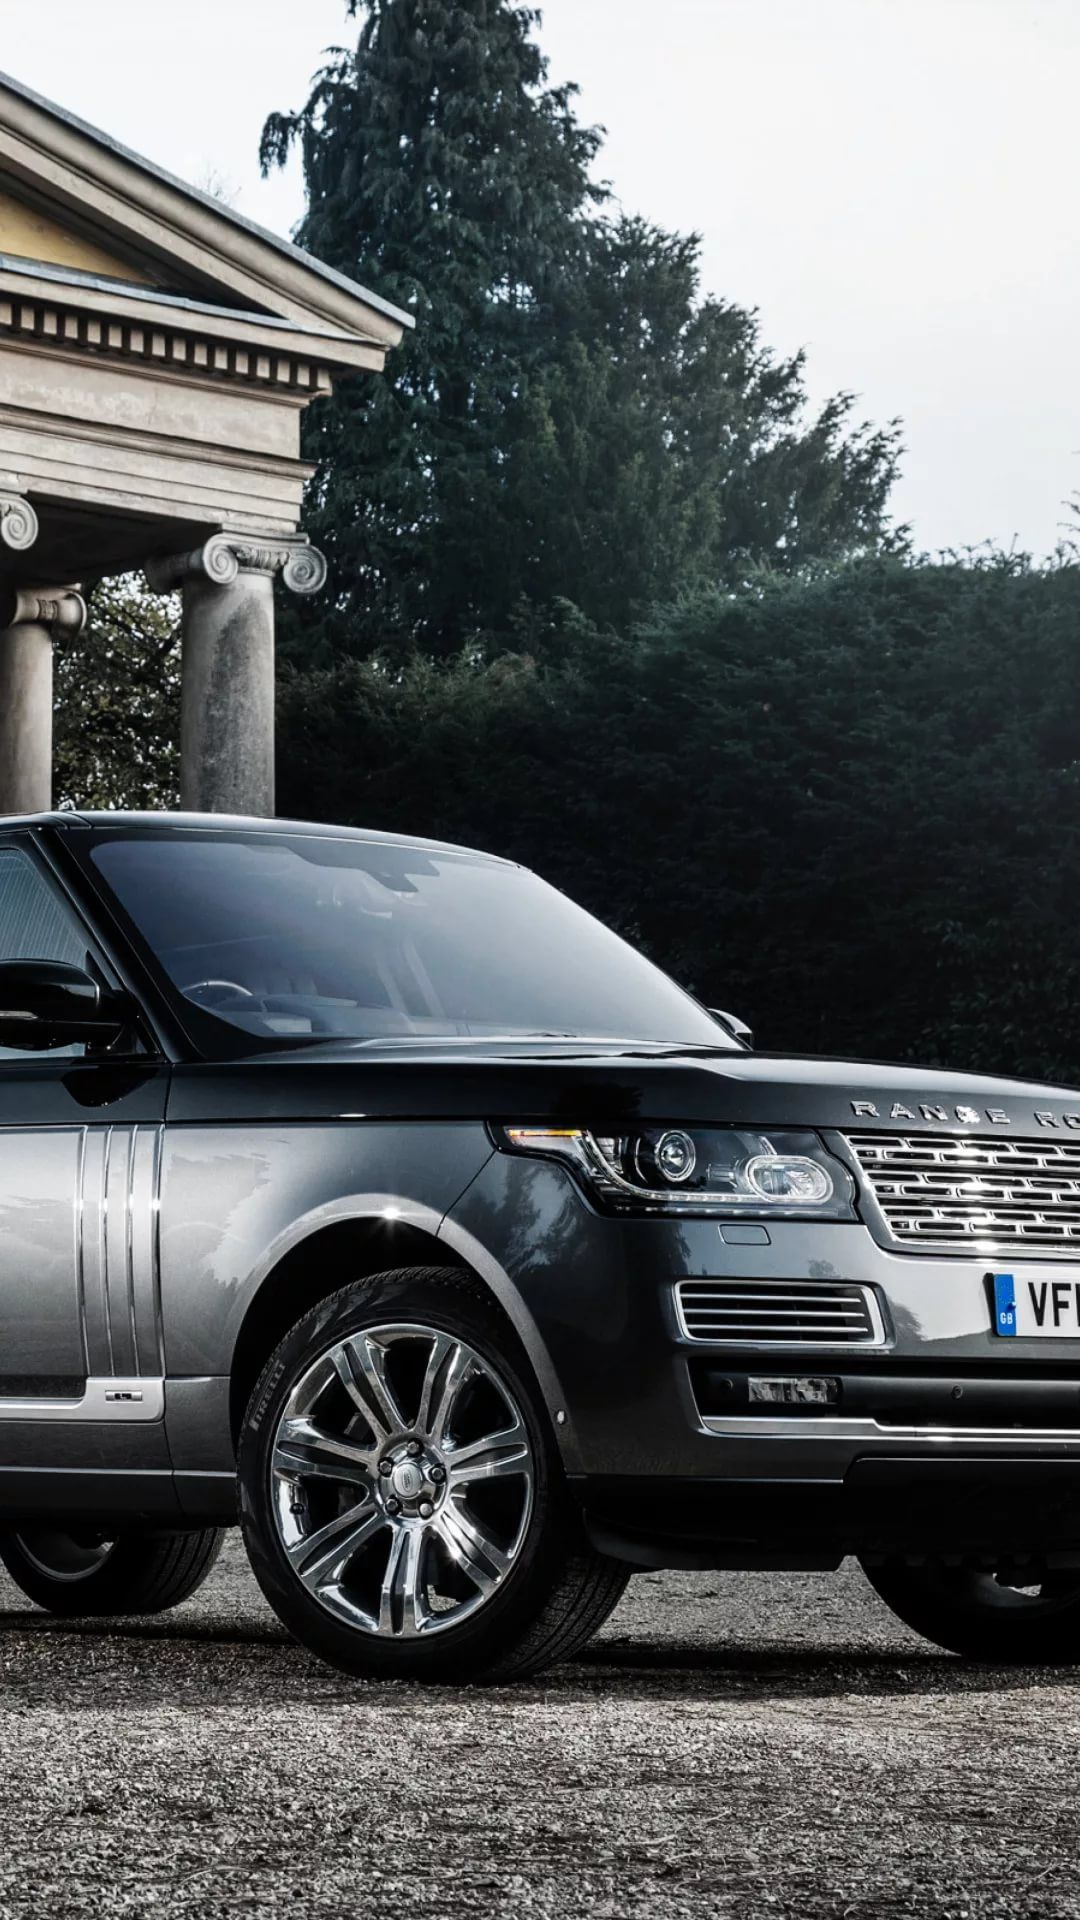 Range Rover Iphone Wallpapers 20 Images Wallpaperboat